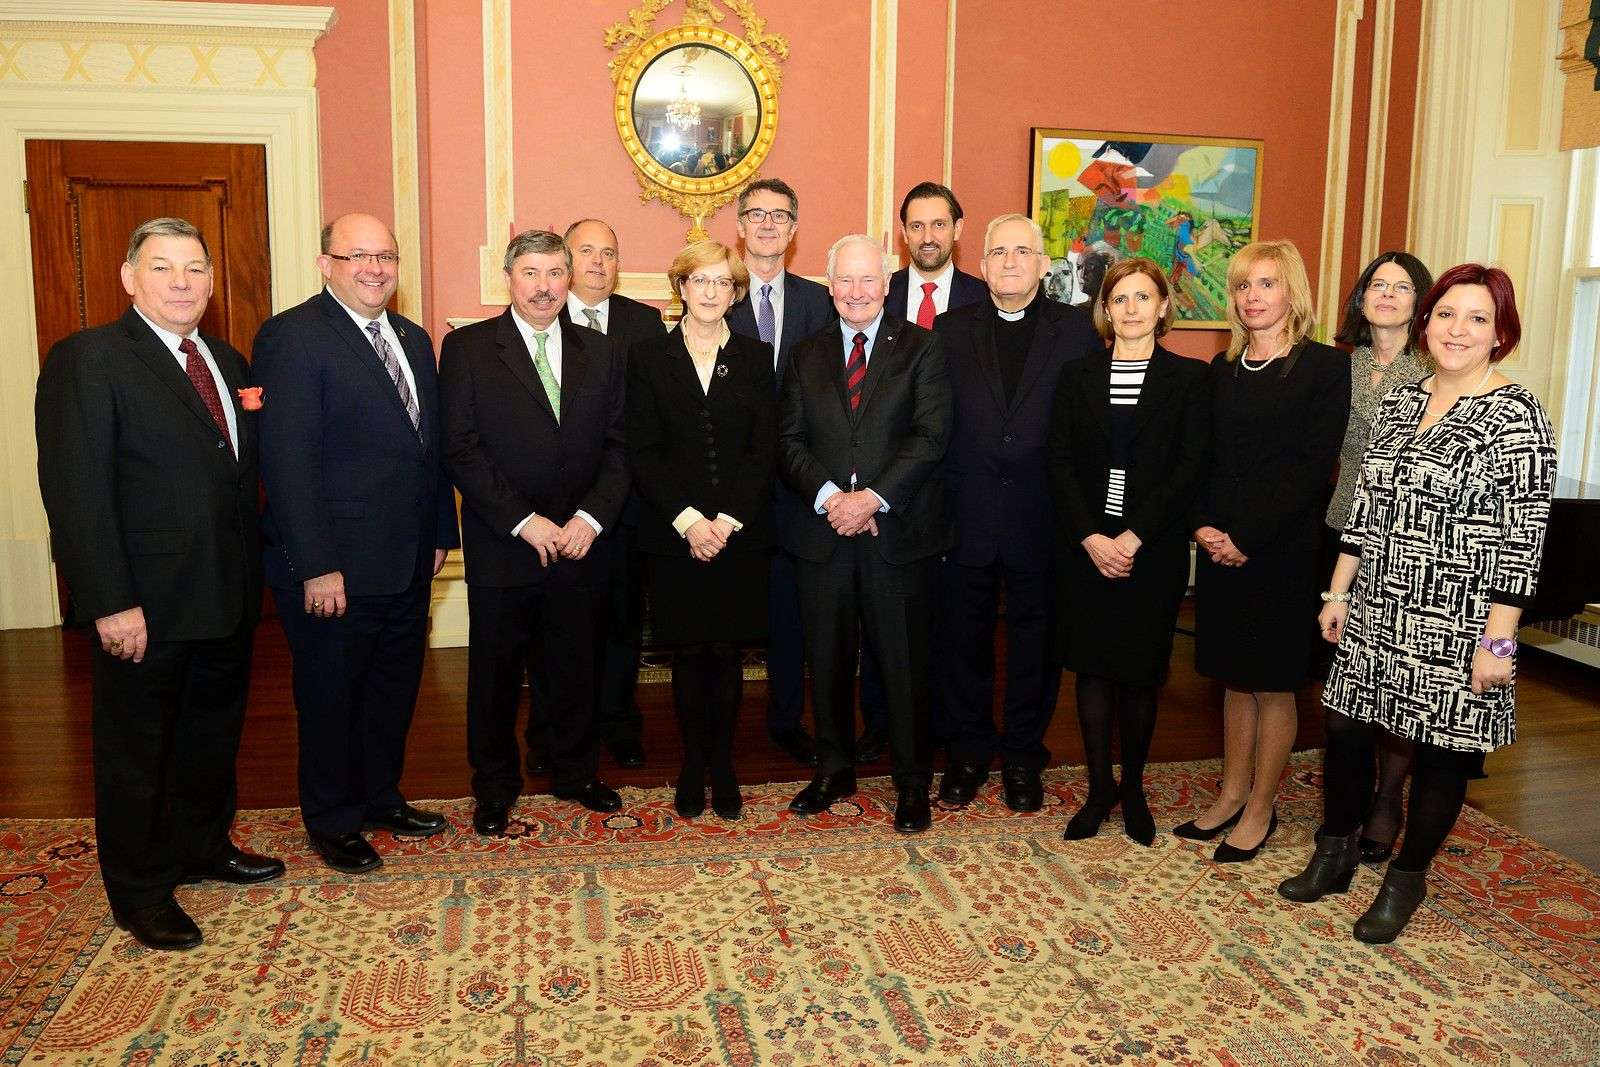 Congratulations to the new ambassador of the republic of for Canadian chambre of commerce